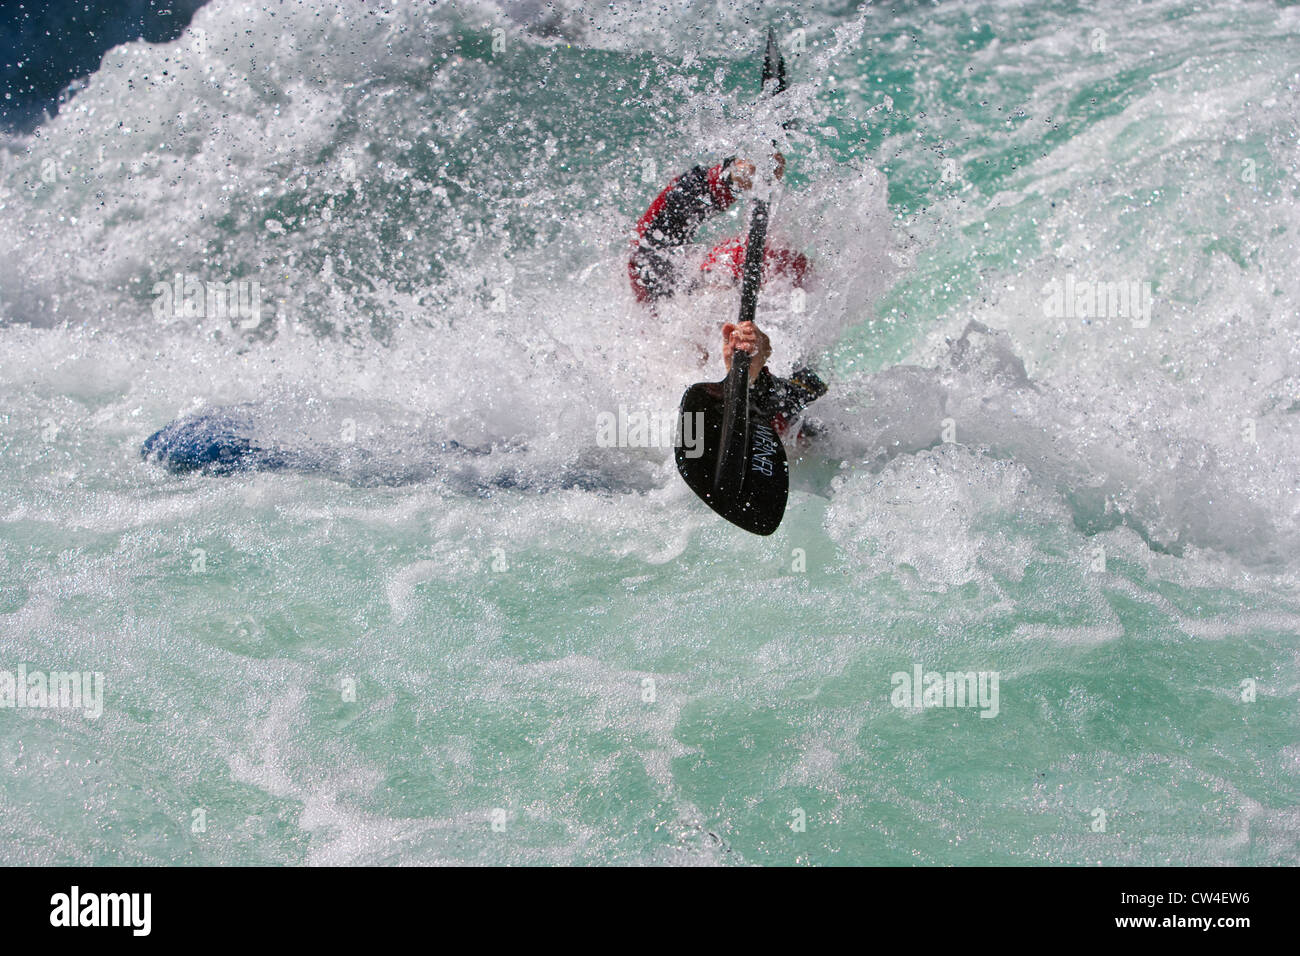 Whitewater kayaker surfacing after running drop on Inn River near Pfunds, Austria - Stock Image